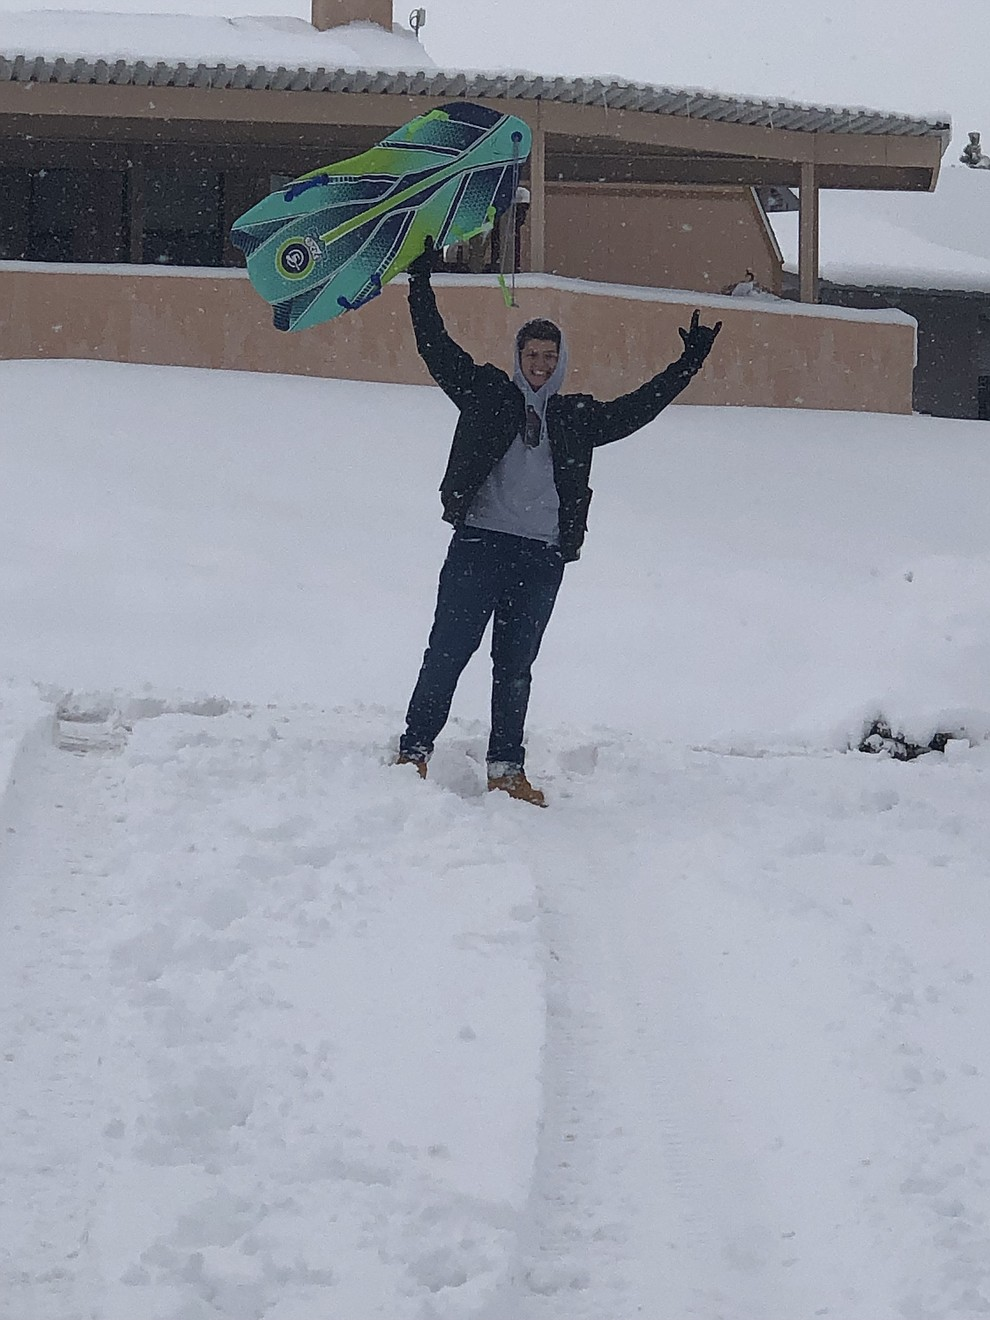 Jesse Vallejo playing in the snow